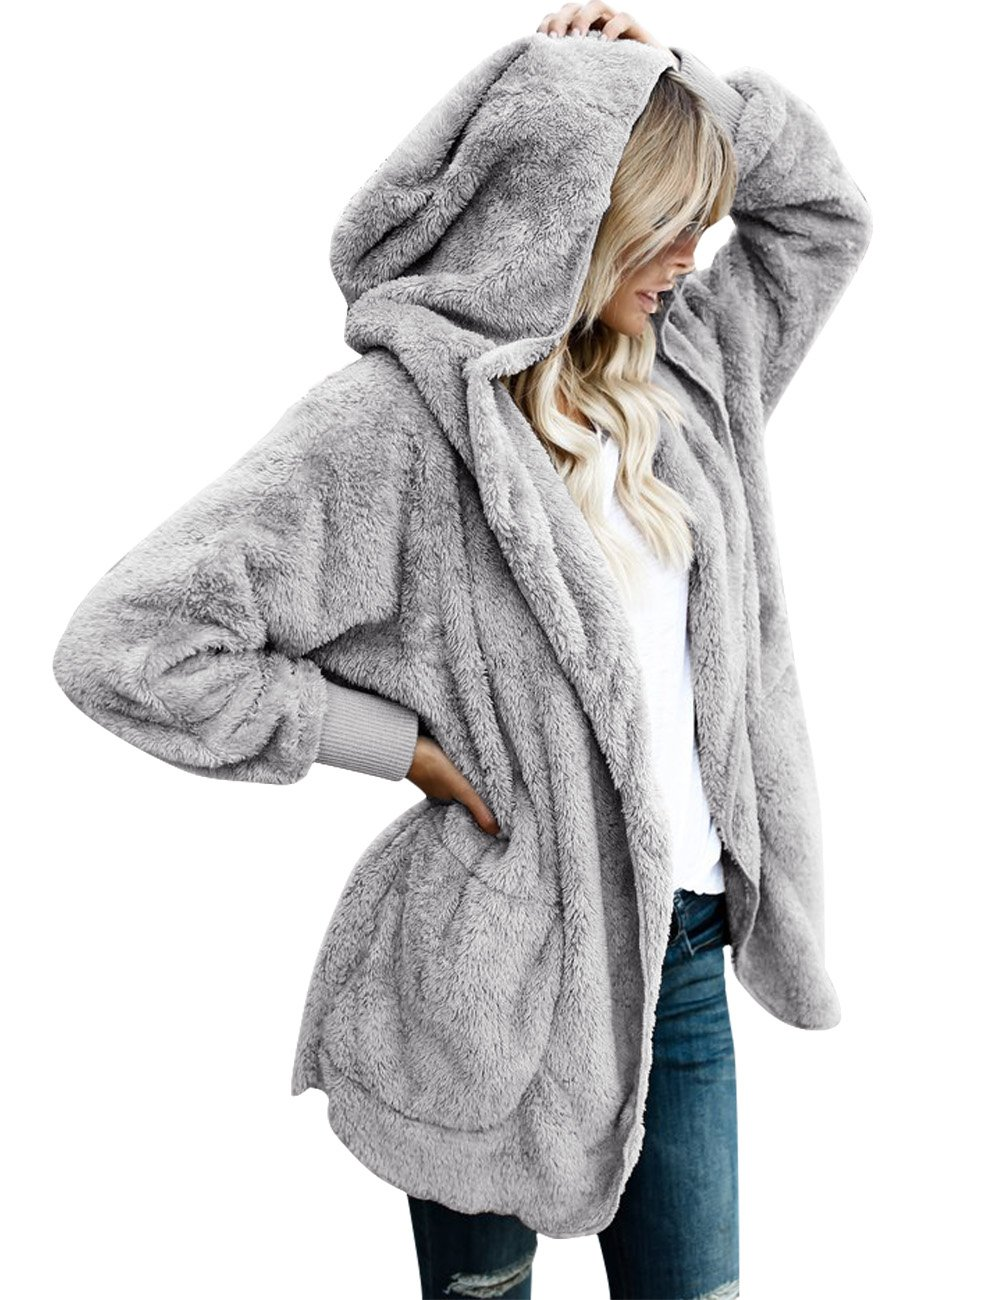 LookbookStore Women's Oversized Open Front Hooded Draped Pocket Cardigan Coat Size XL (Fit US 16 - US 18)